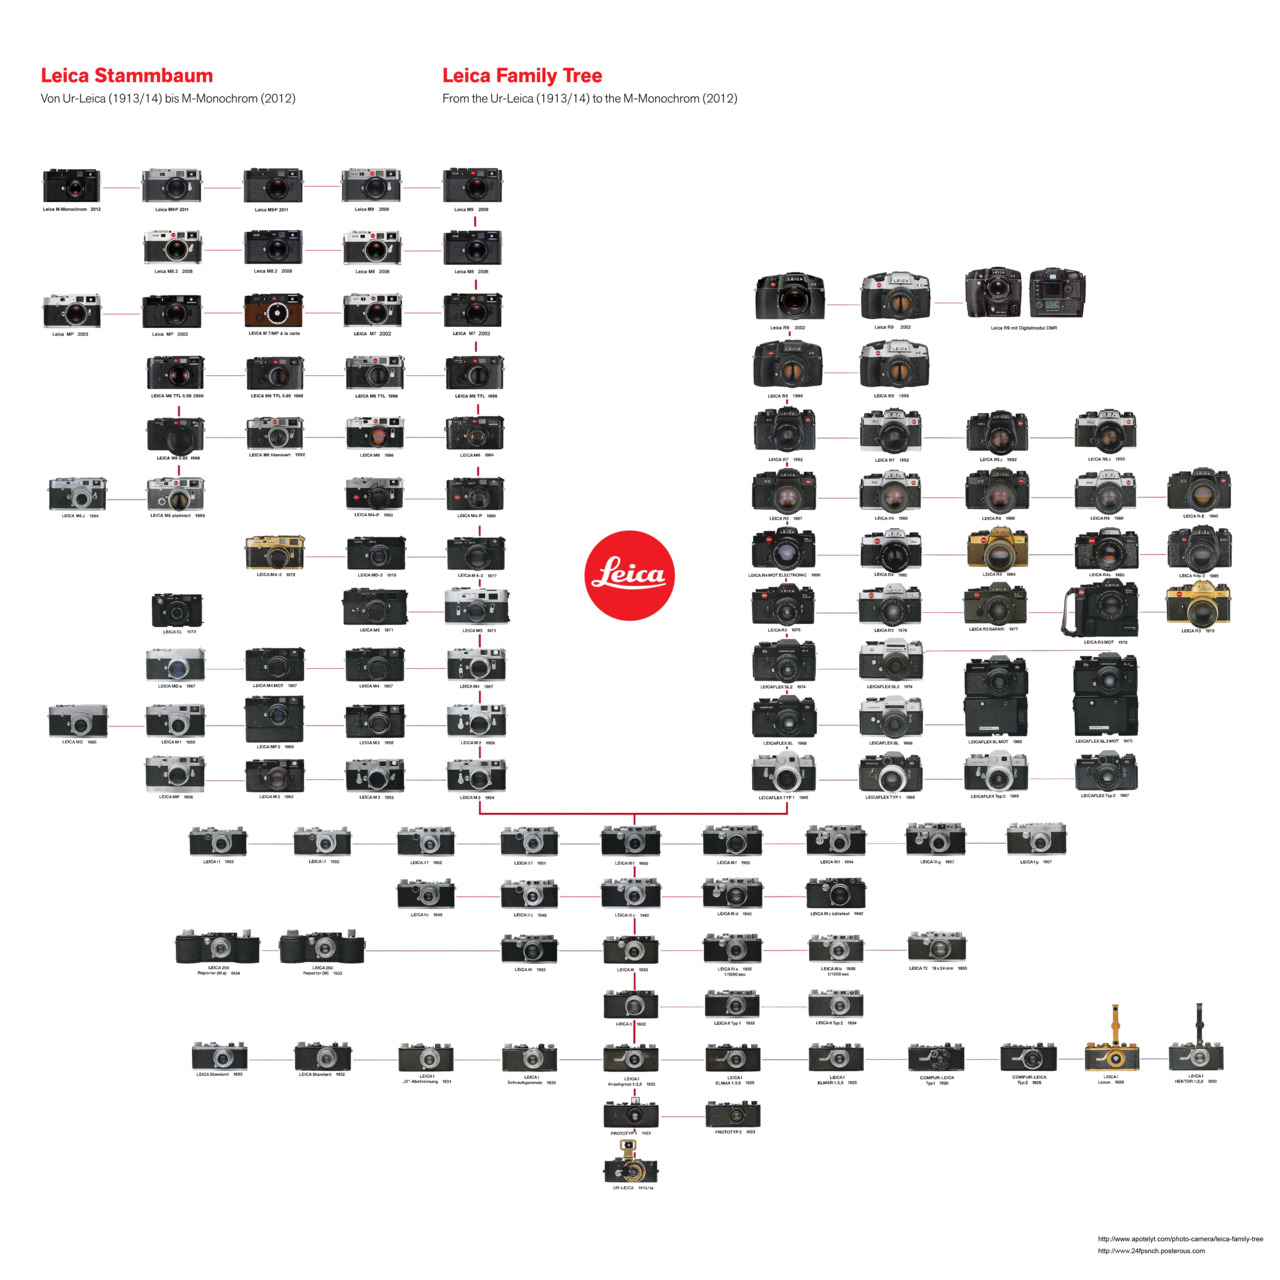 Poster showing the evolution of Leica cameras from the Ur-Leica in 1913 to the M9-P in 2011